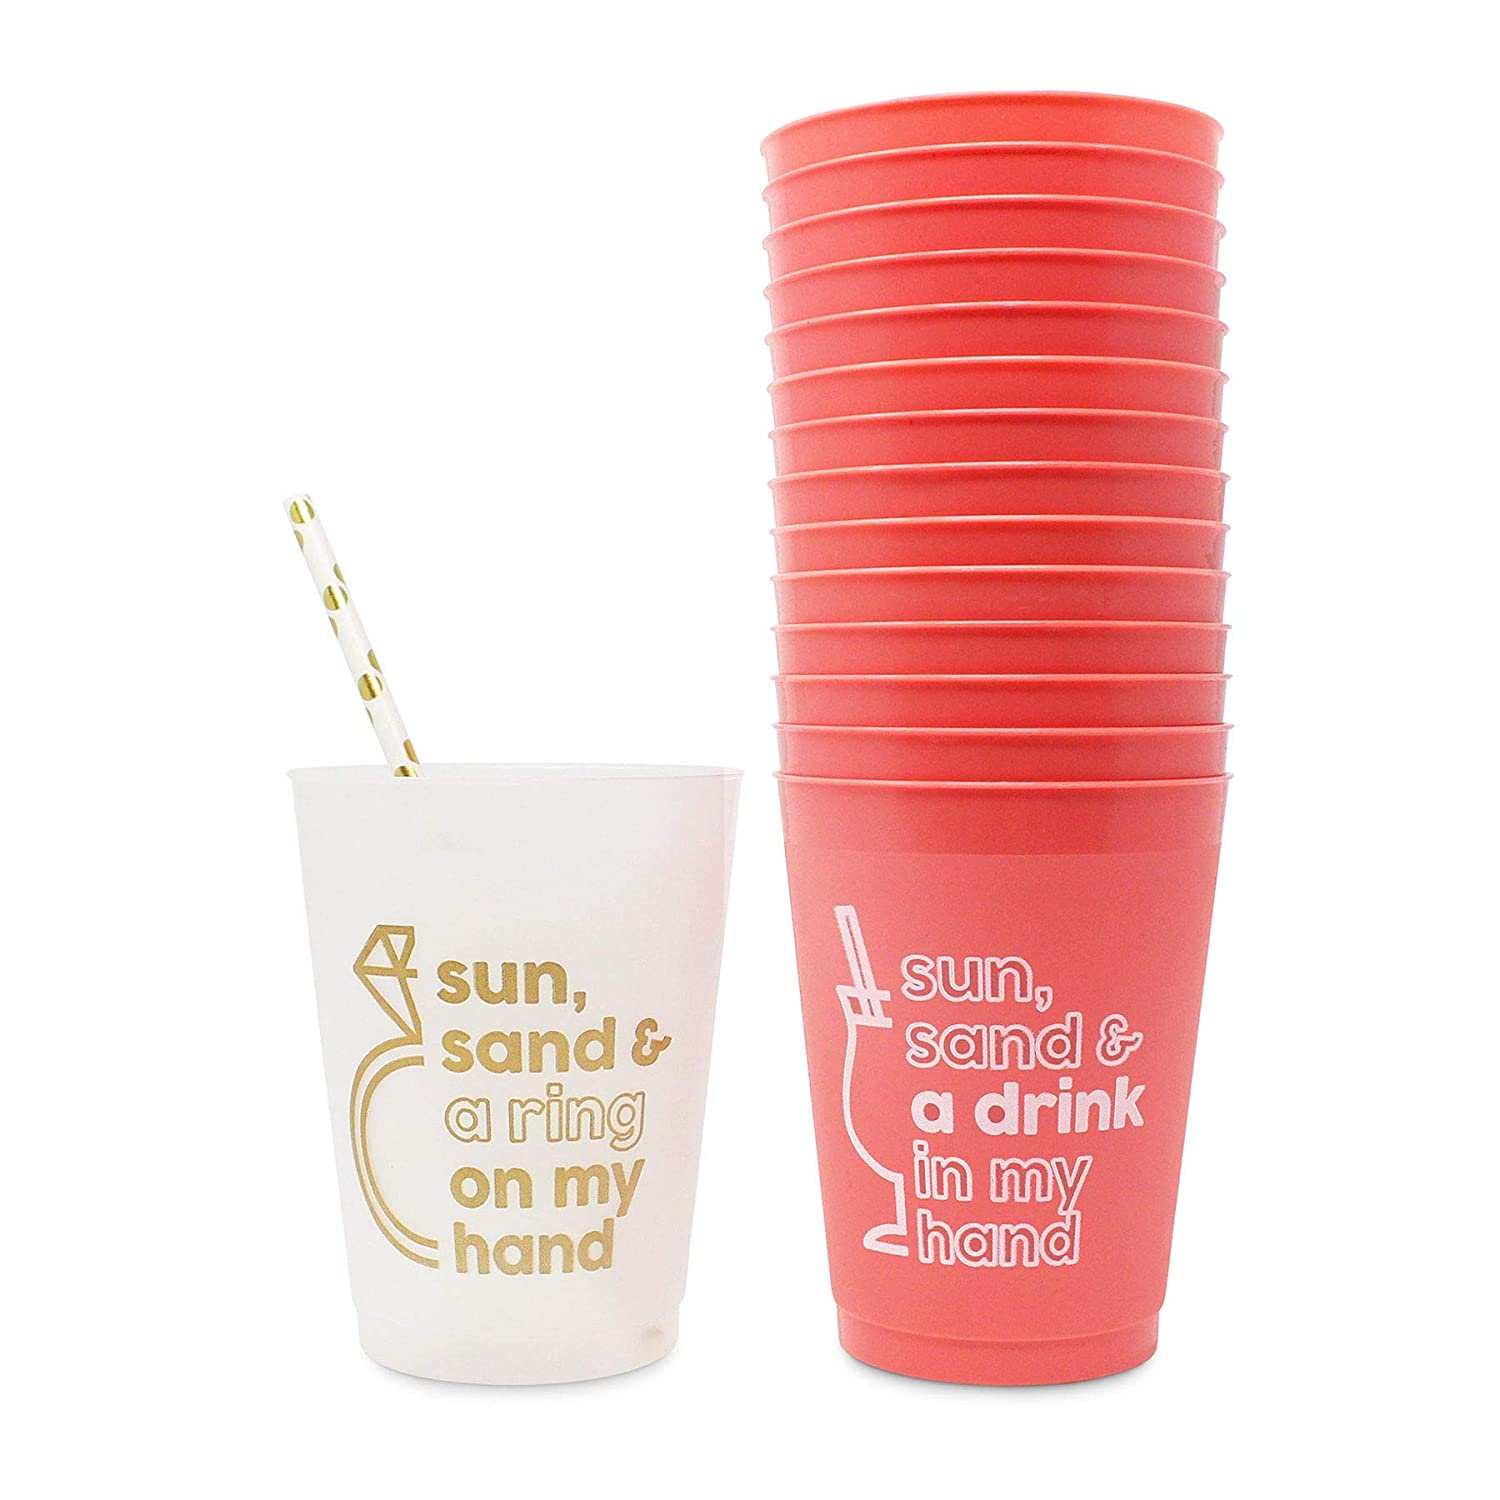 16 oz | Beach Bachelorette Party Cups Decorations Sun /& Sand Bachelorette Party Cups by Stag /& Hen Supplies 15 Pack With Bonus Cup For The Bride